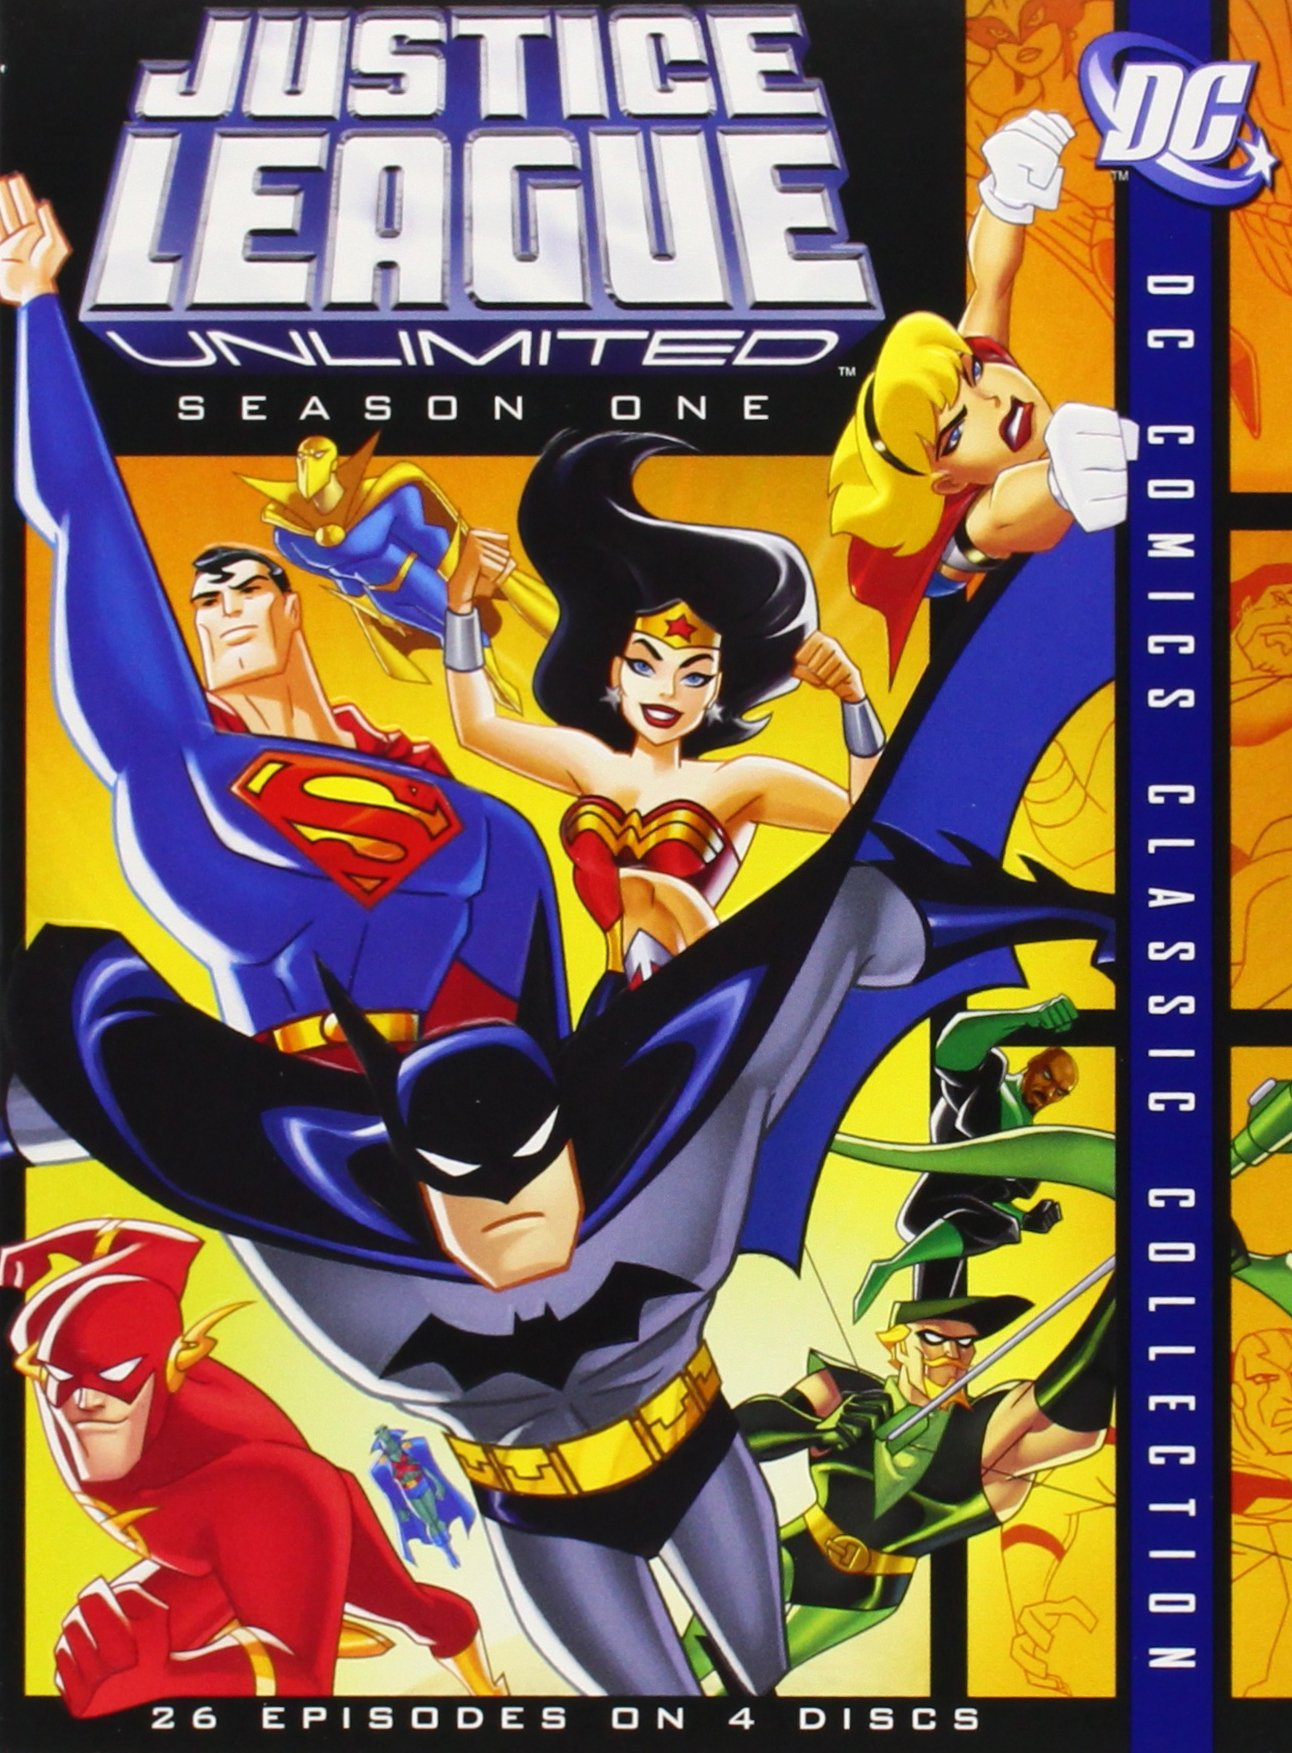 Justice League Unlimited, Seasons 1-2 (DC Comics Classic Collection) by Justice League